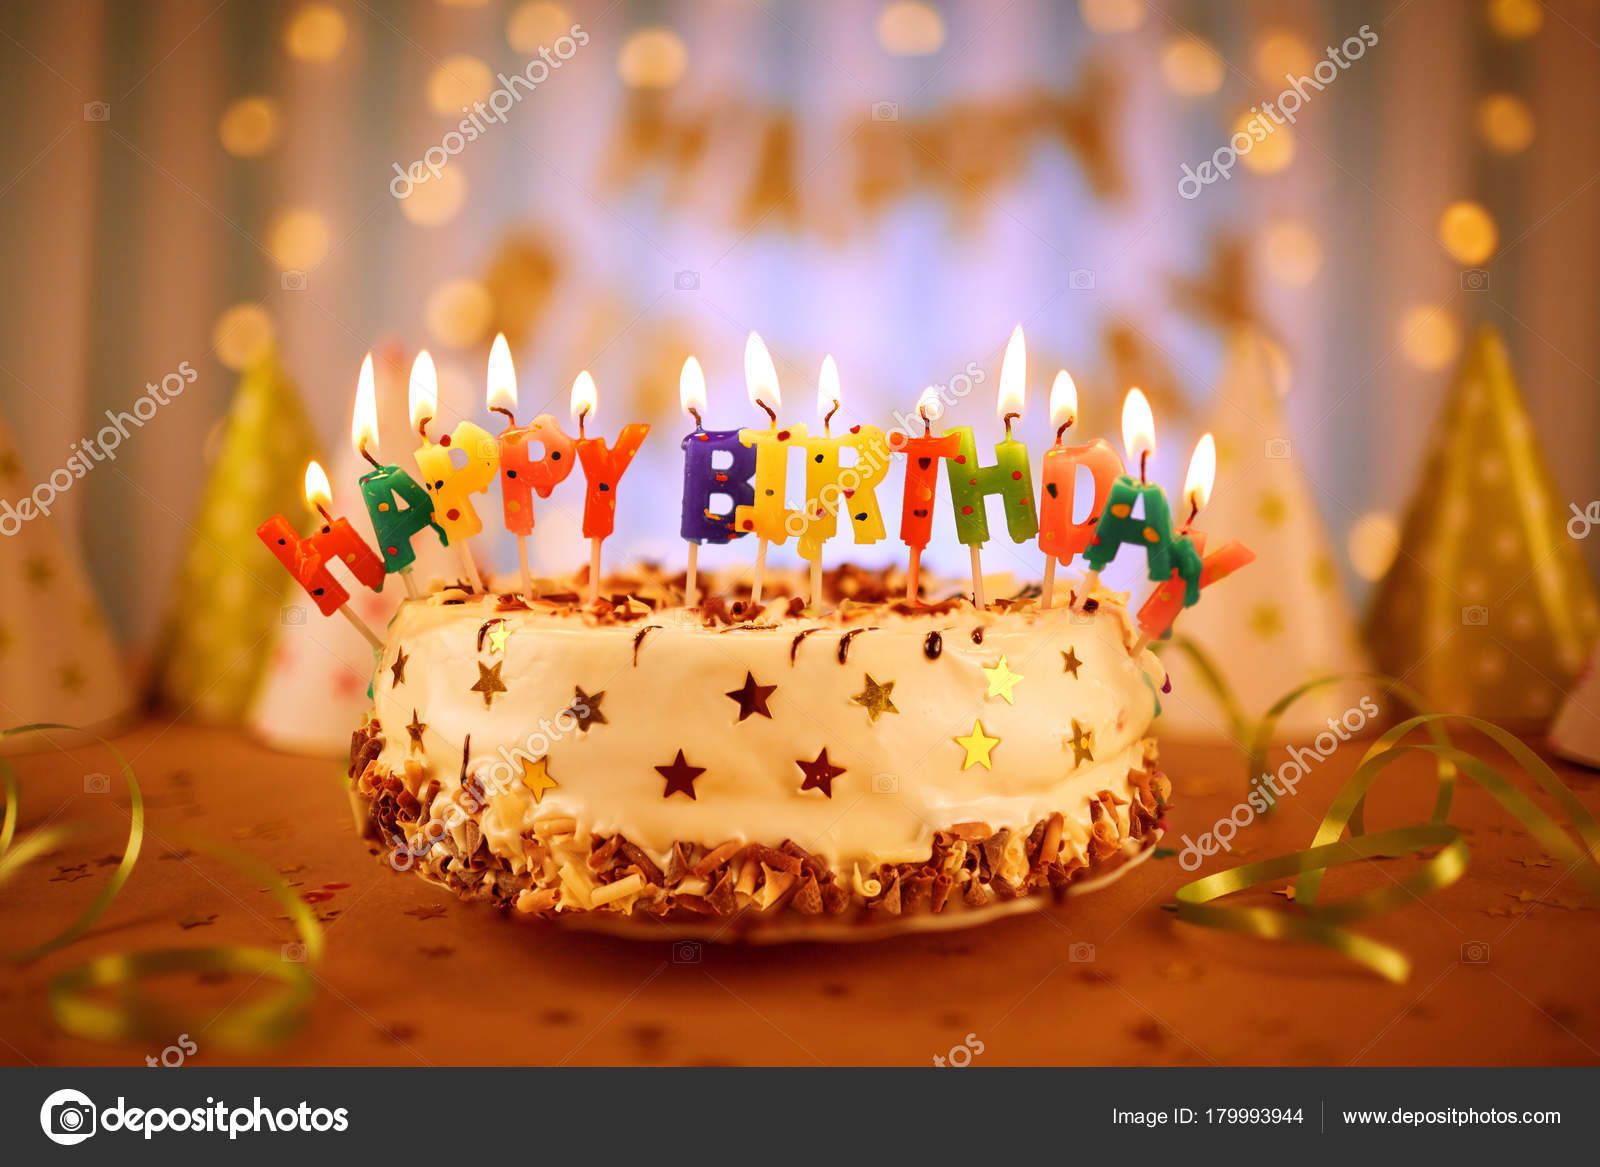 Birthday Cake With Candles.Happy Birthday Cake With Candles Stock Photo C Lacheev